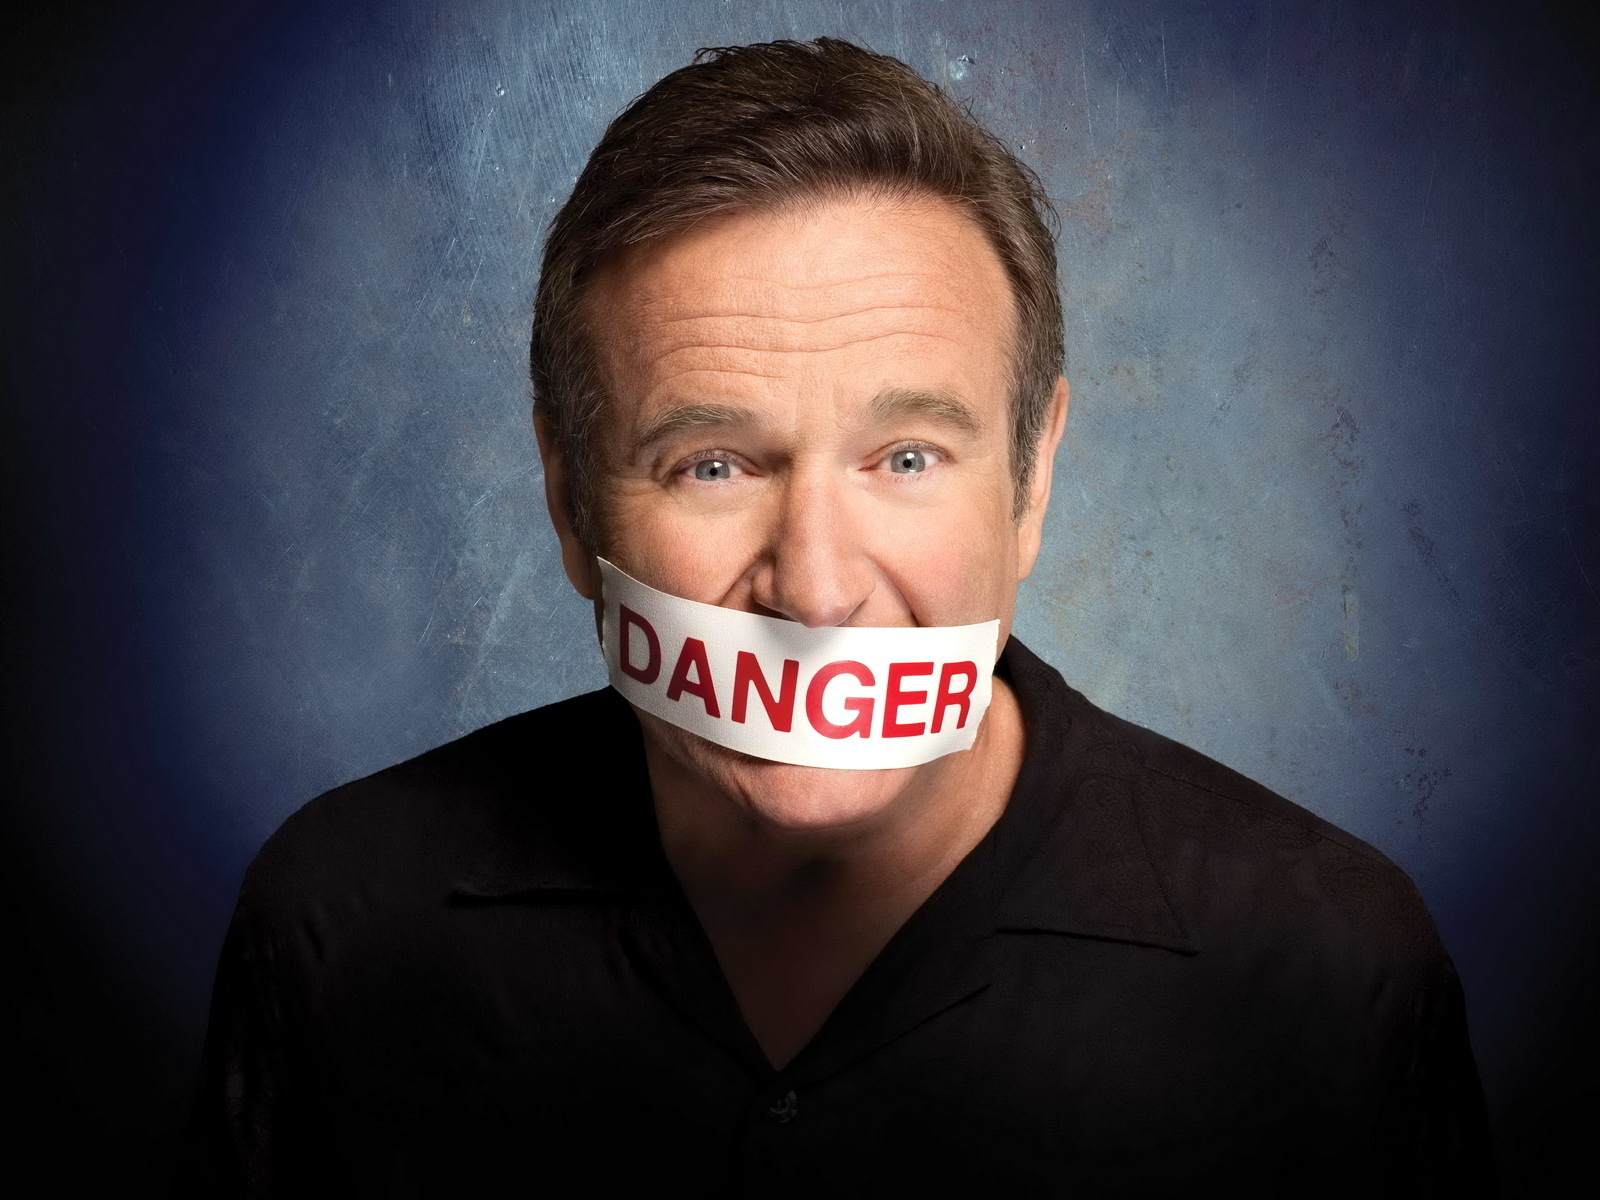 Robin Williams Danger